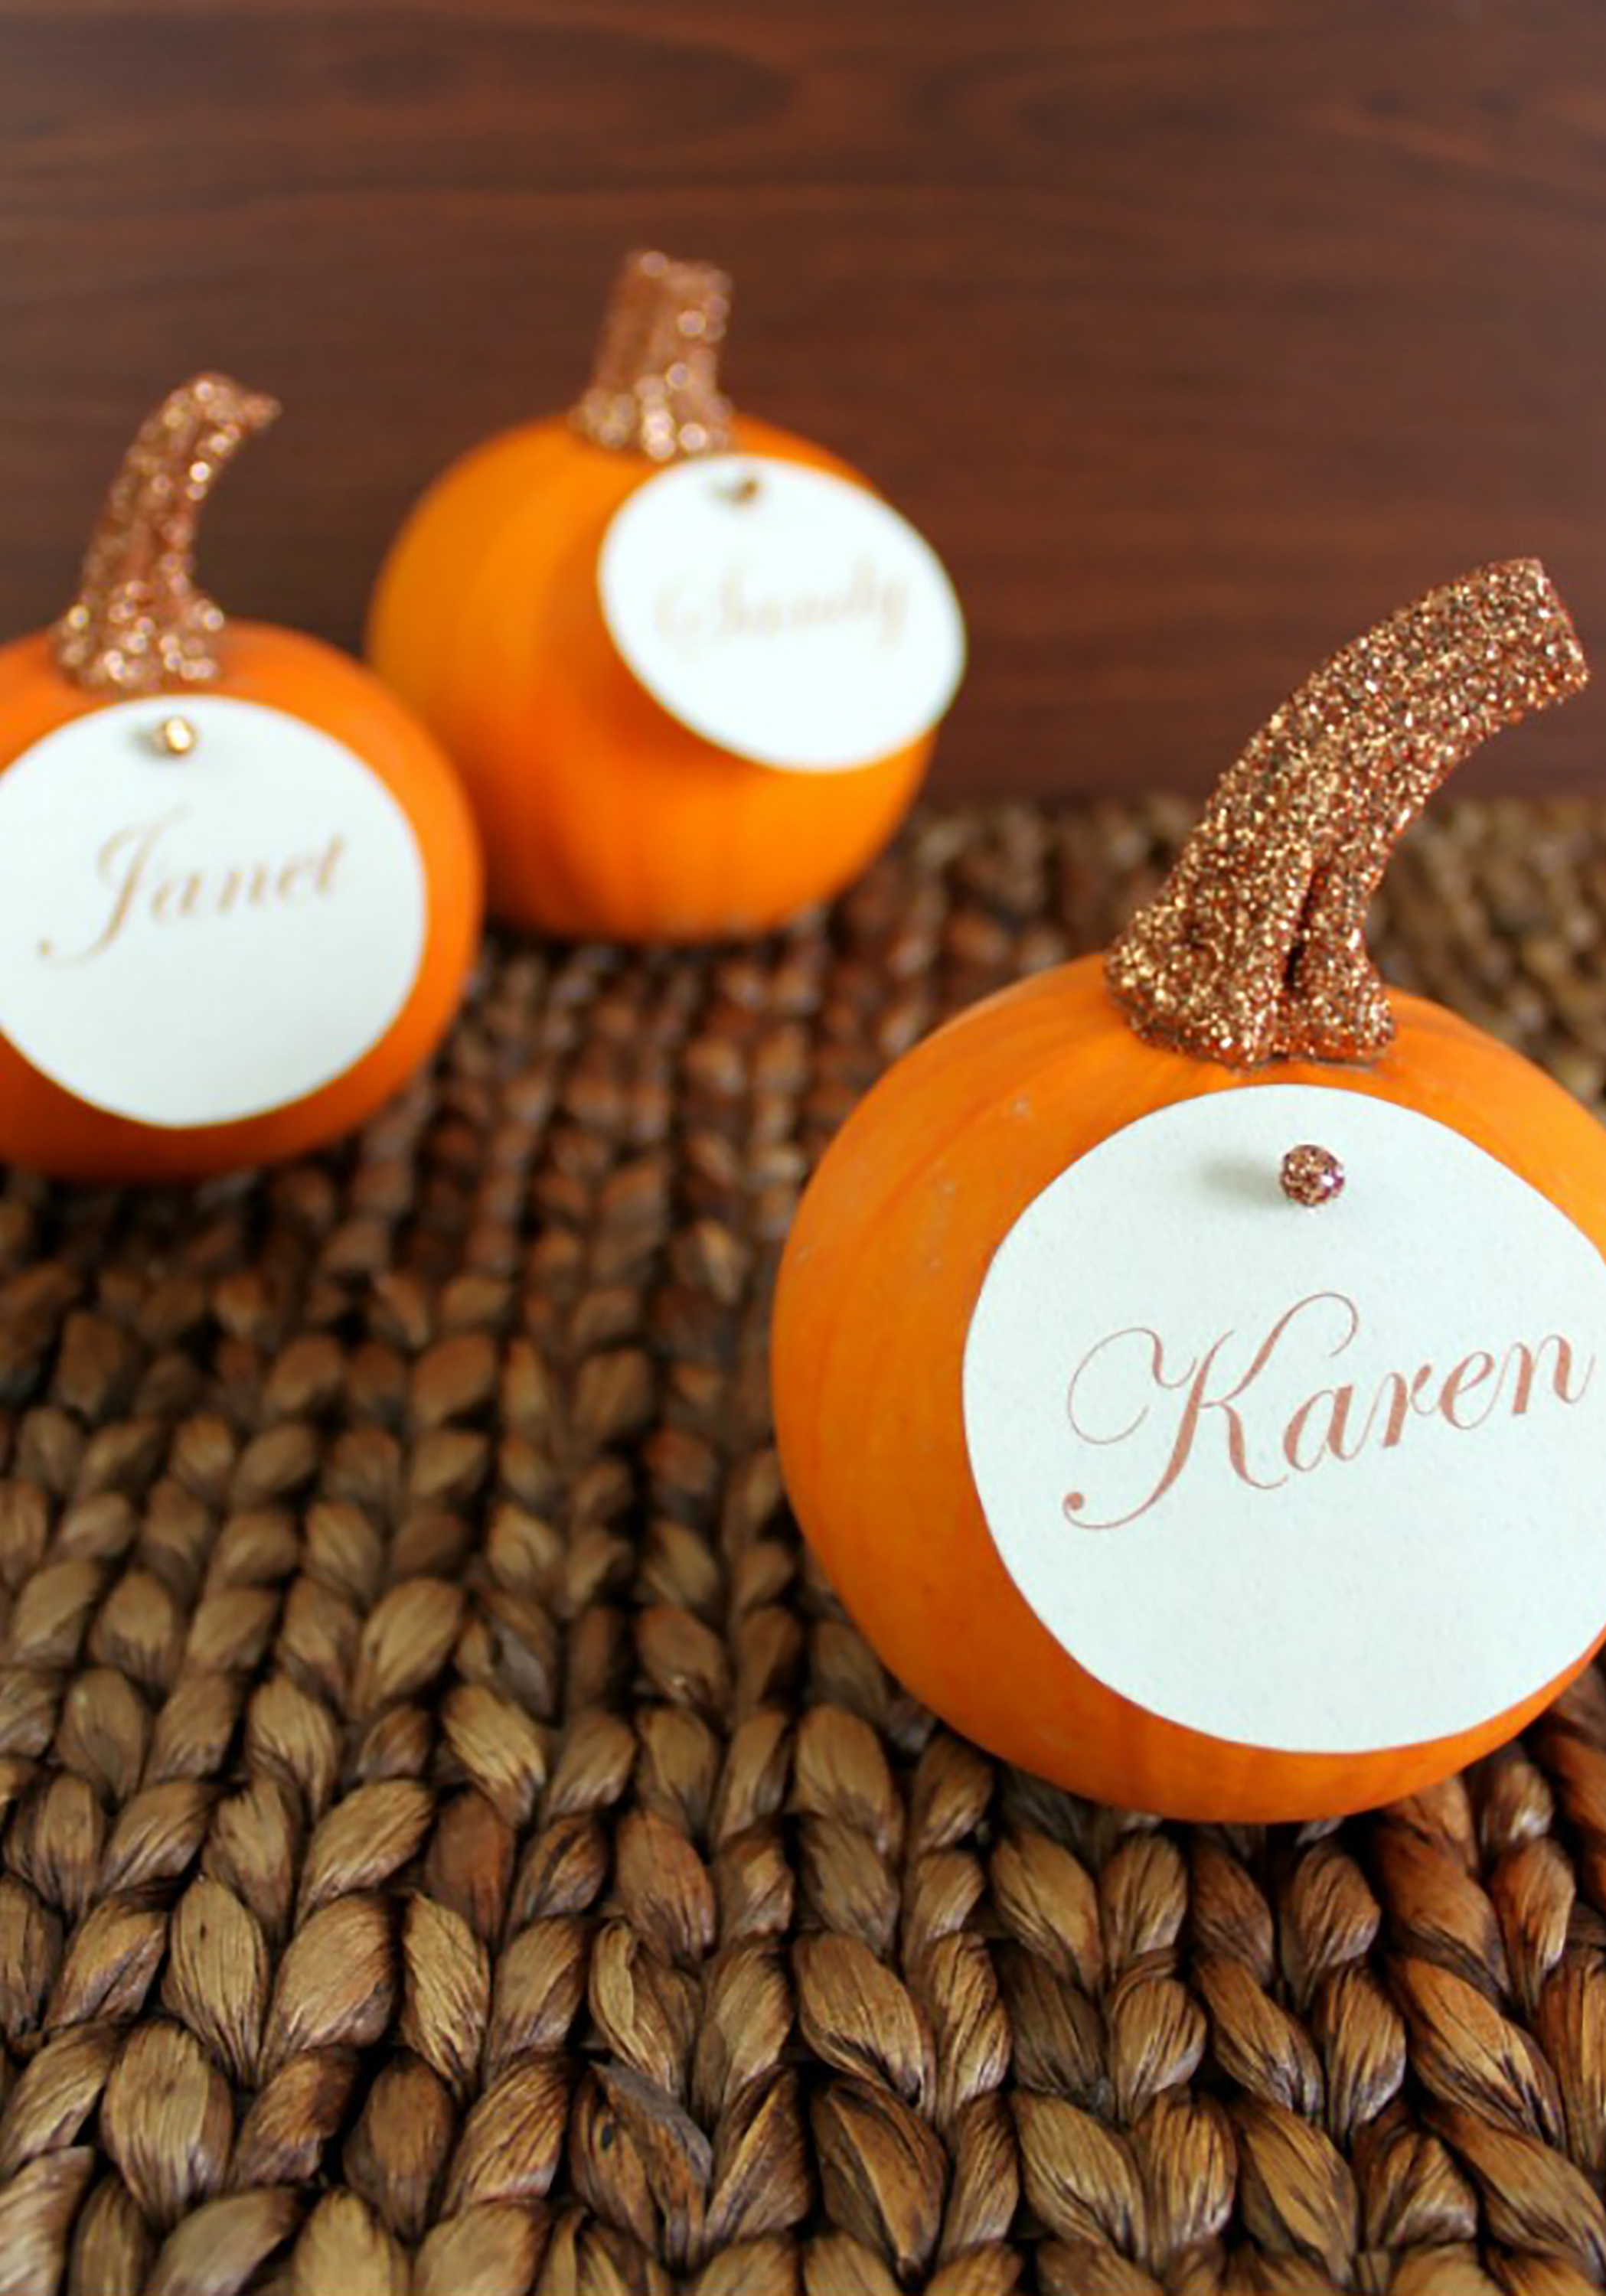 16 Thanksgiving Place Cards - DIY Place Card Ideas for the Holidays